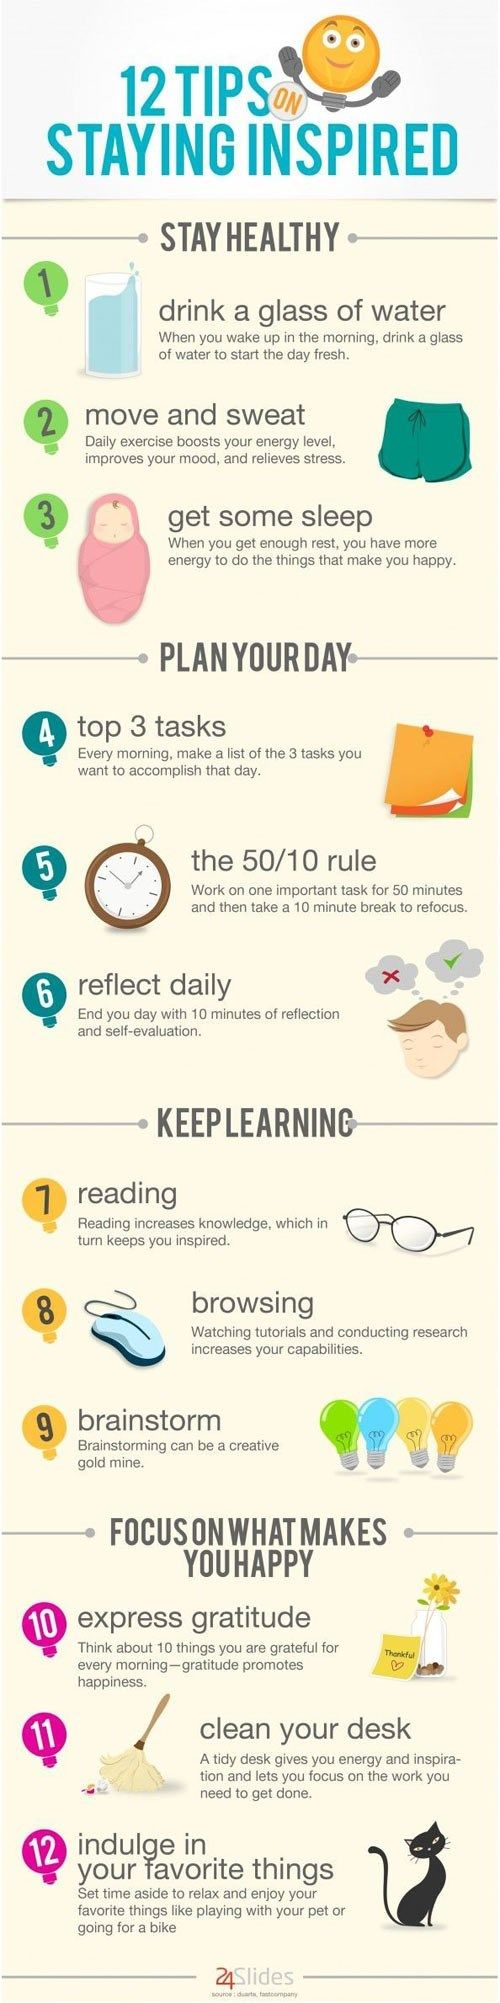 Most of my day is spent trying to make my day happier and more inspiring! I frequently practice these tips on my own, so I'm happy to find that there's an infograph to make it easier.